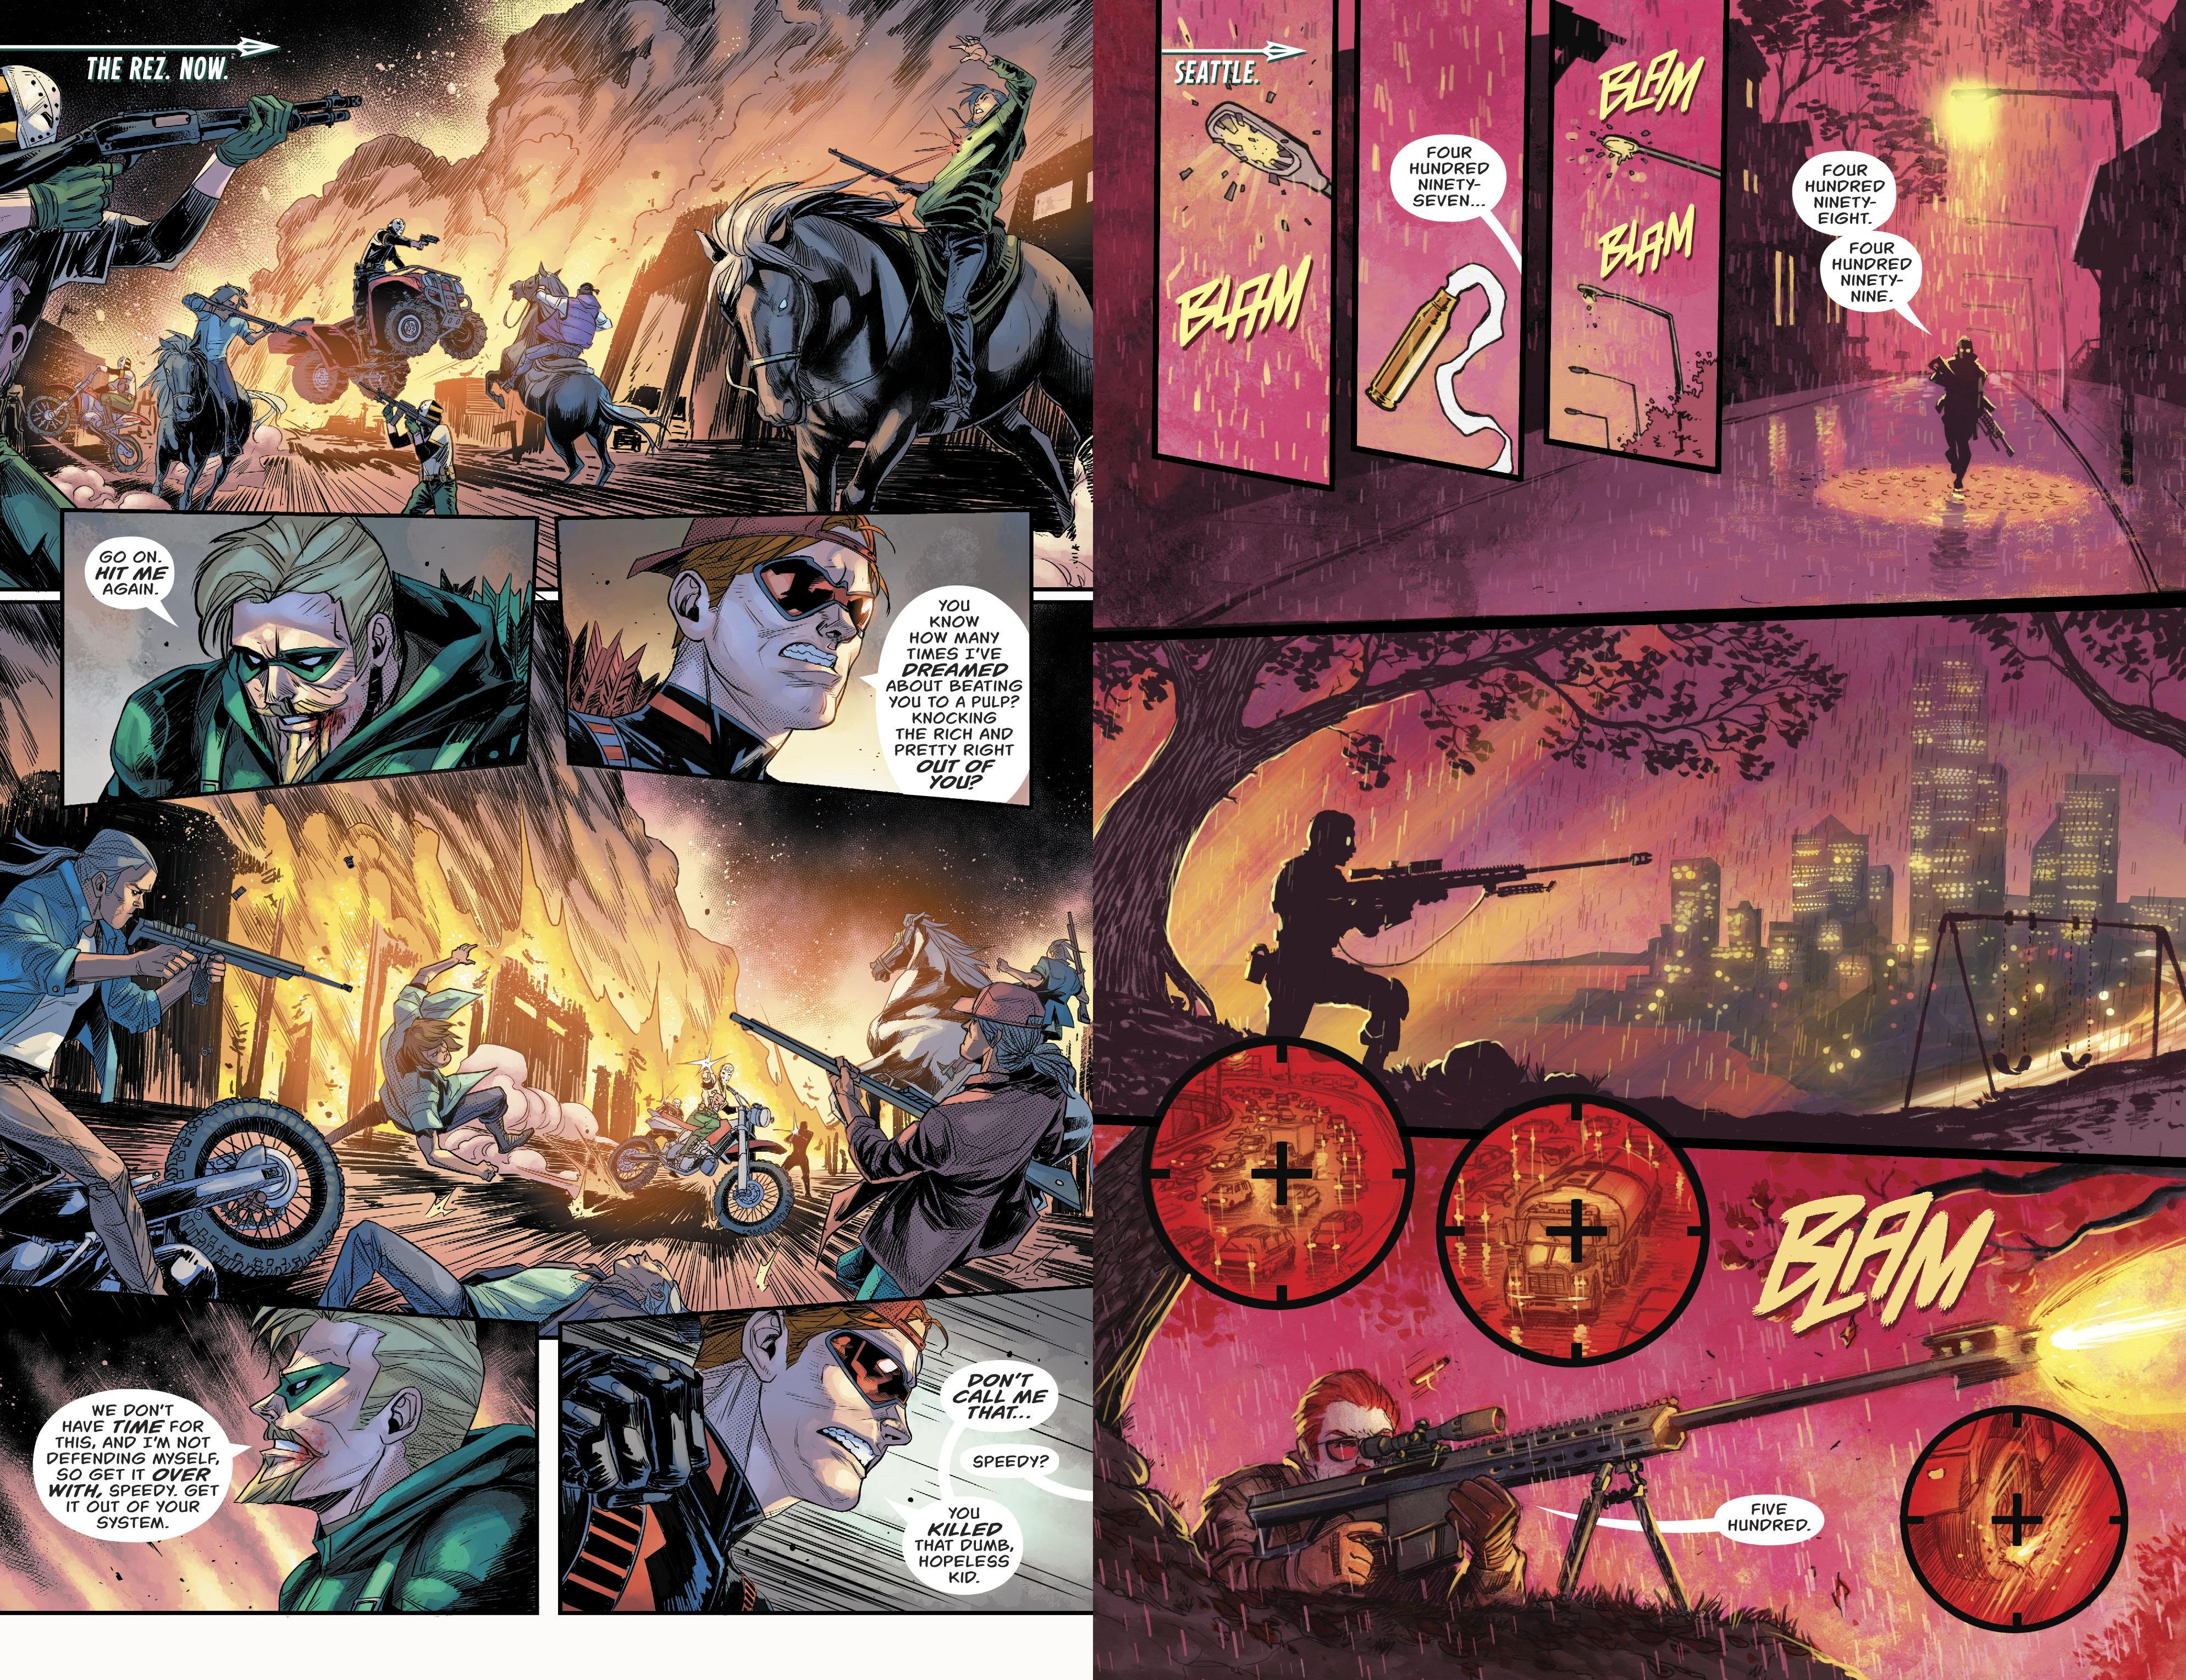 Green Arrow The Rise of Star City review